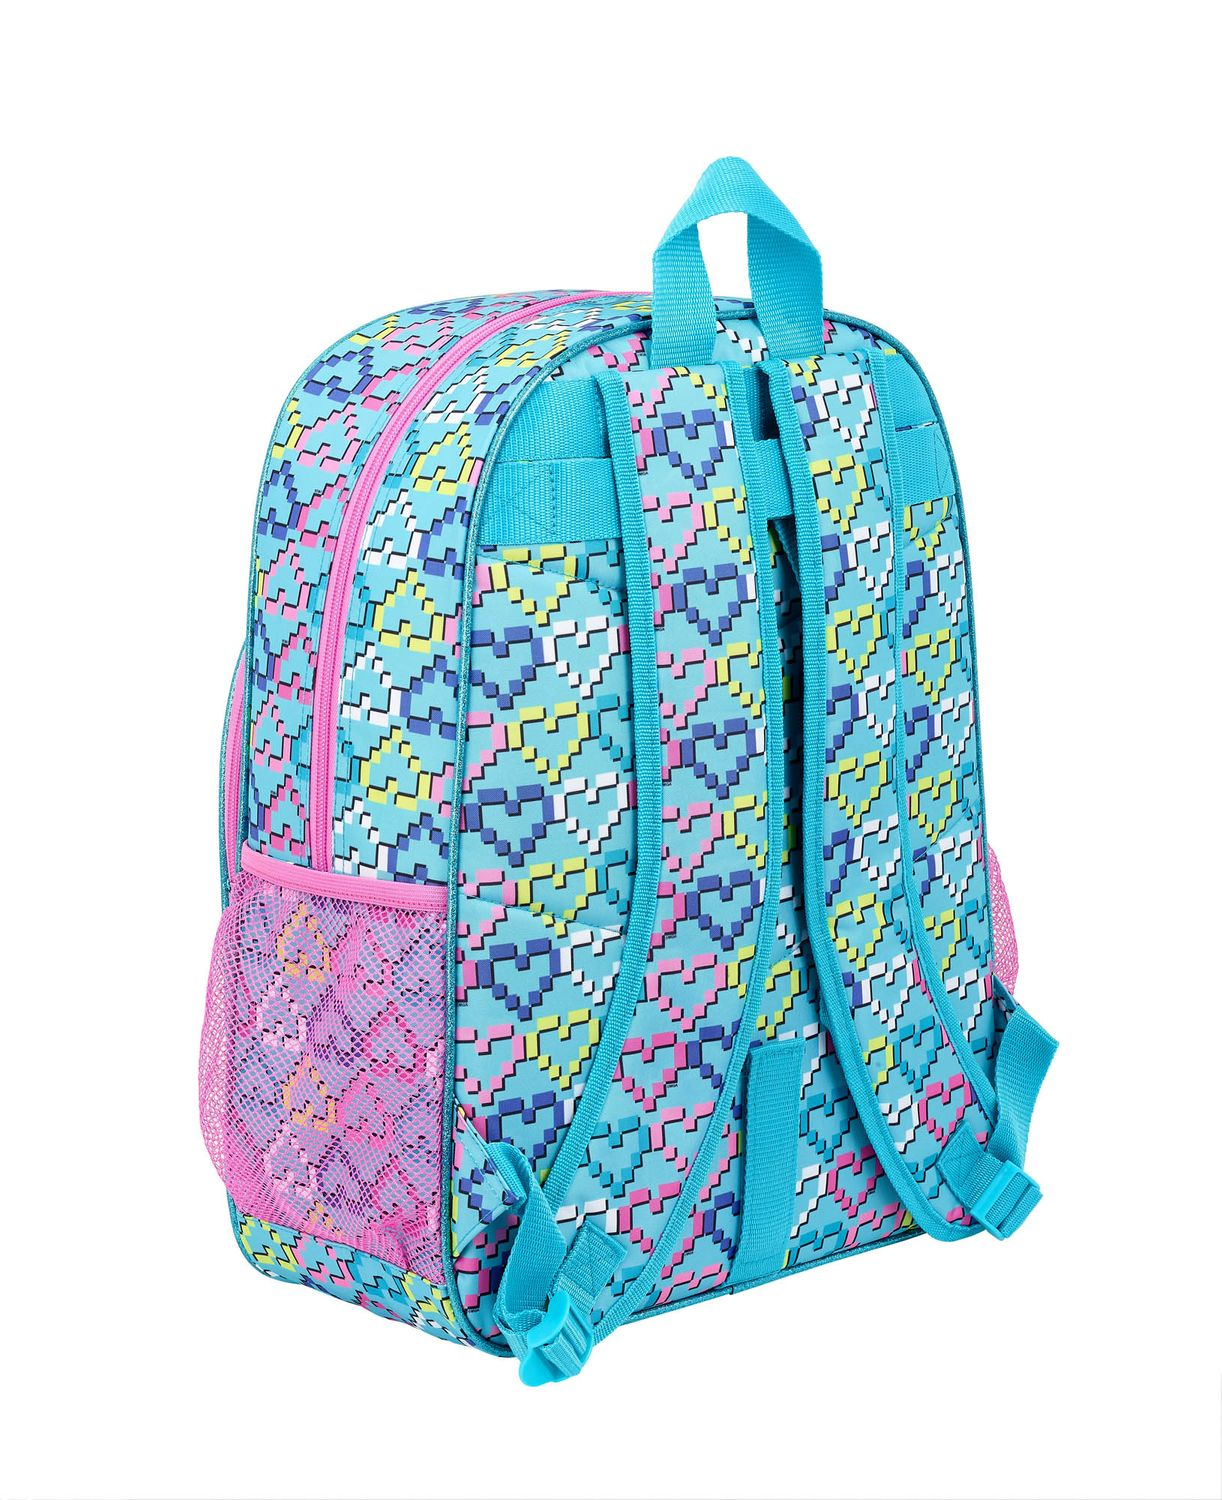 LOL Surprise Hearts Backpack 42cm – image 2